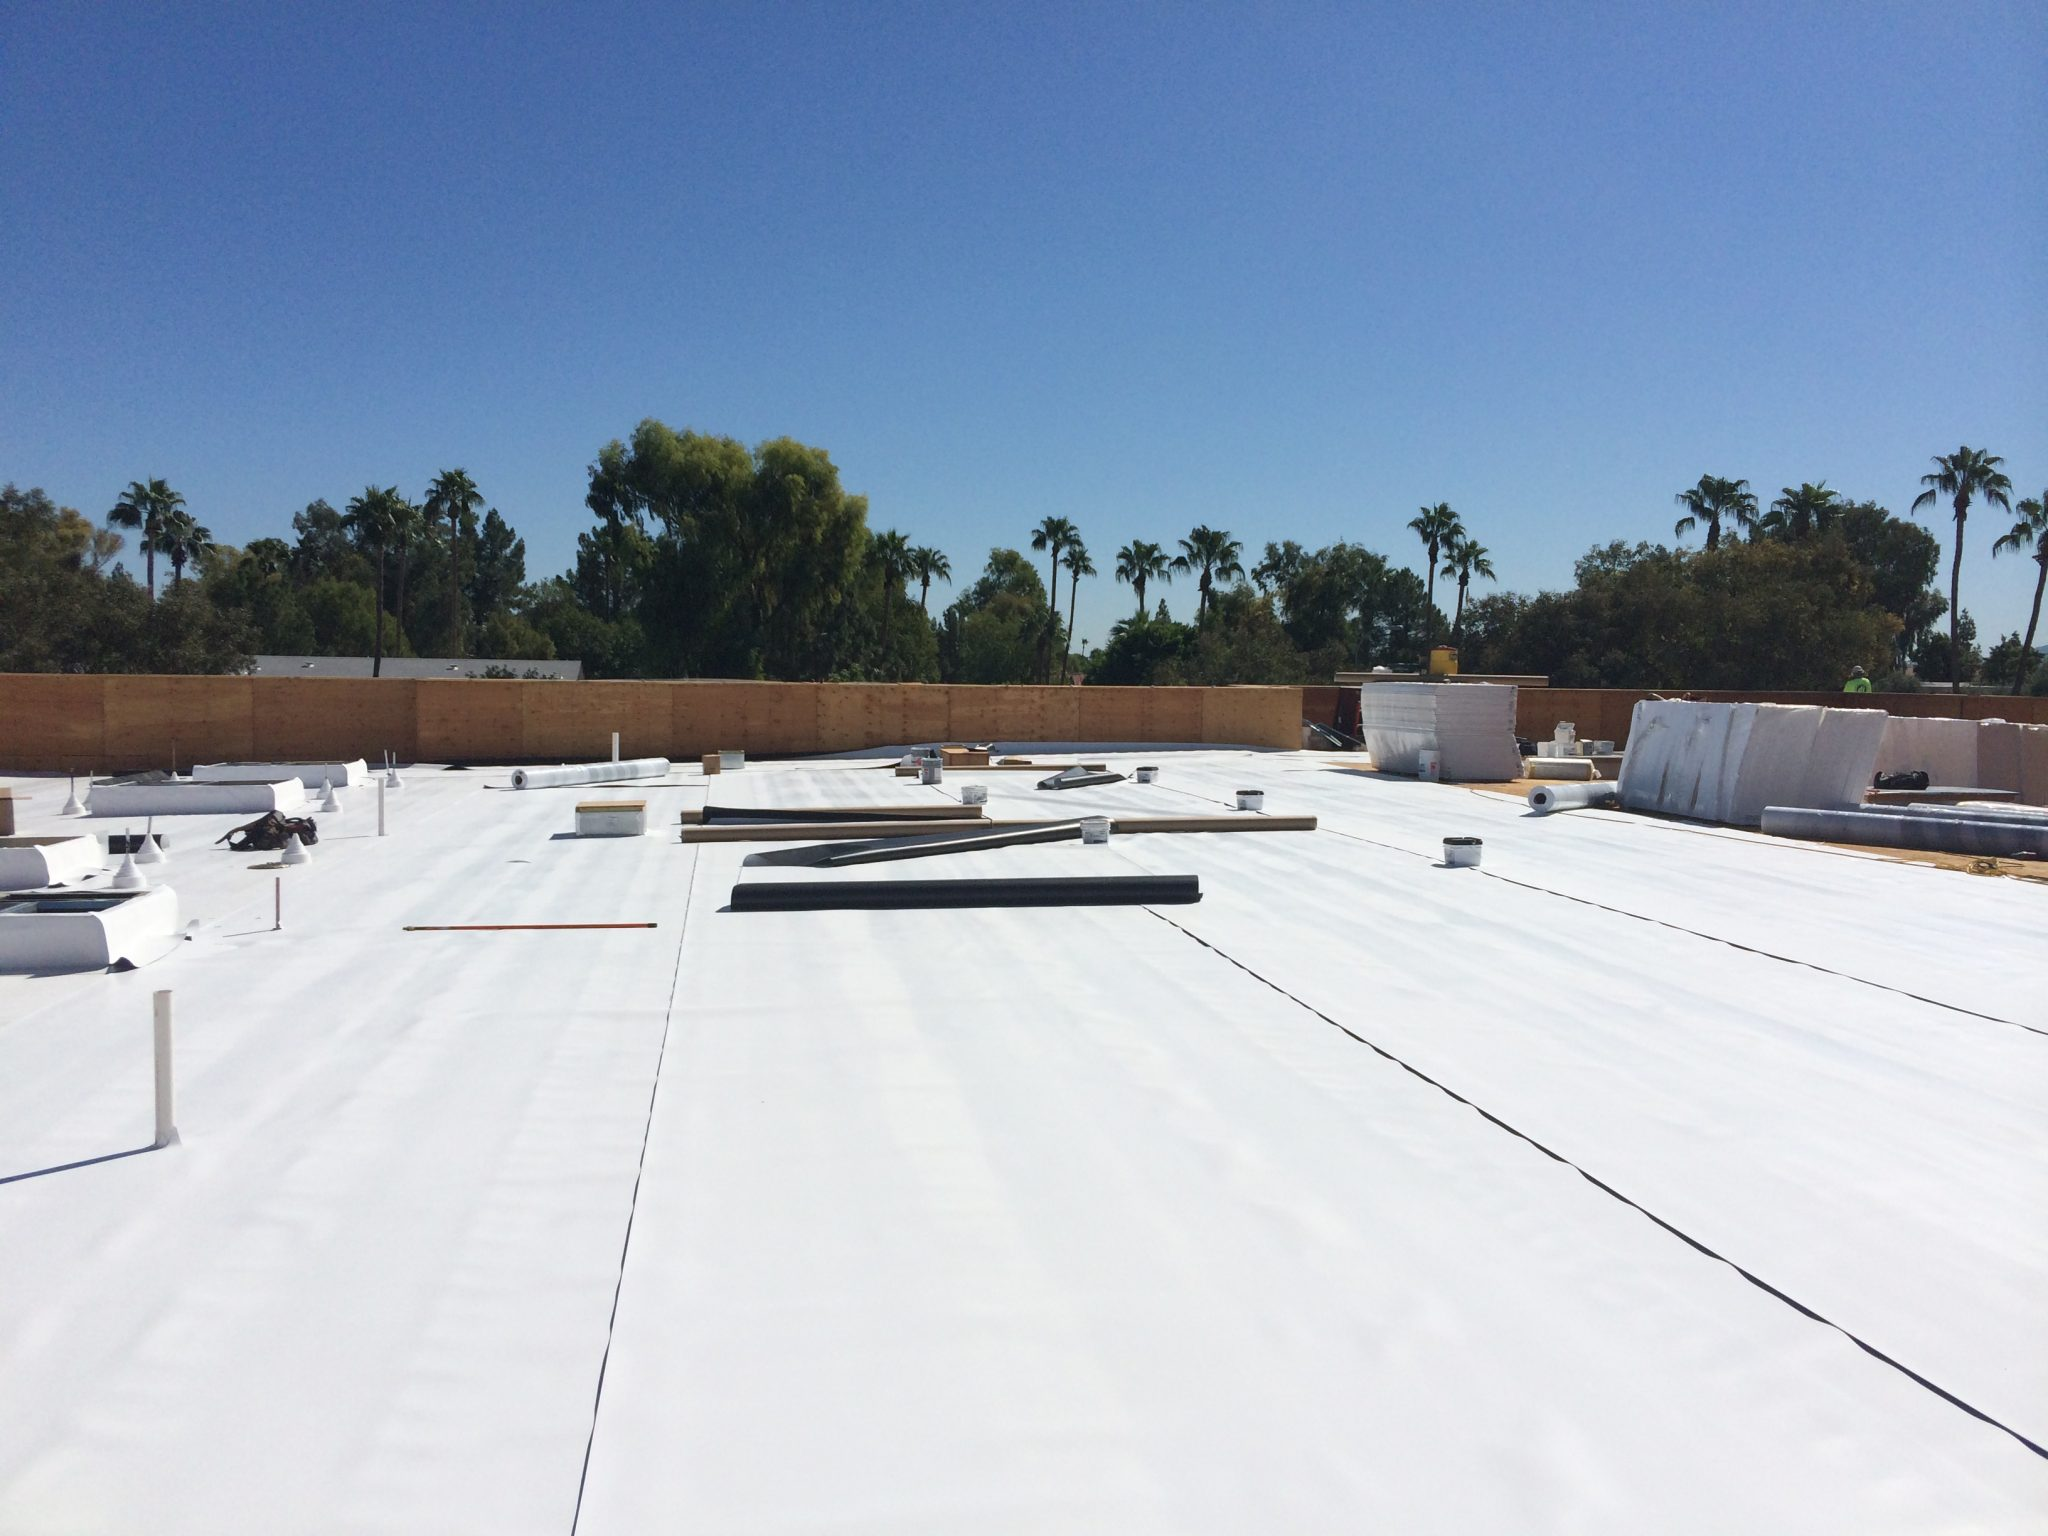 InsulRoof SP: Low-Sloped Roofing Solution for Arizona Commercial Project